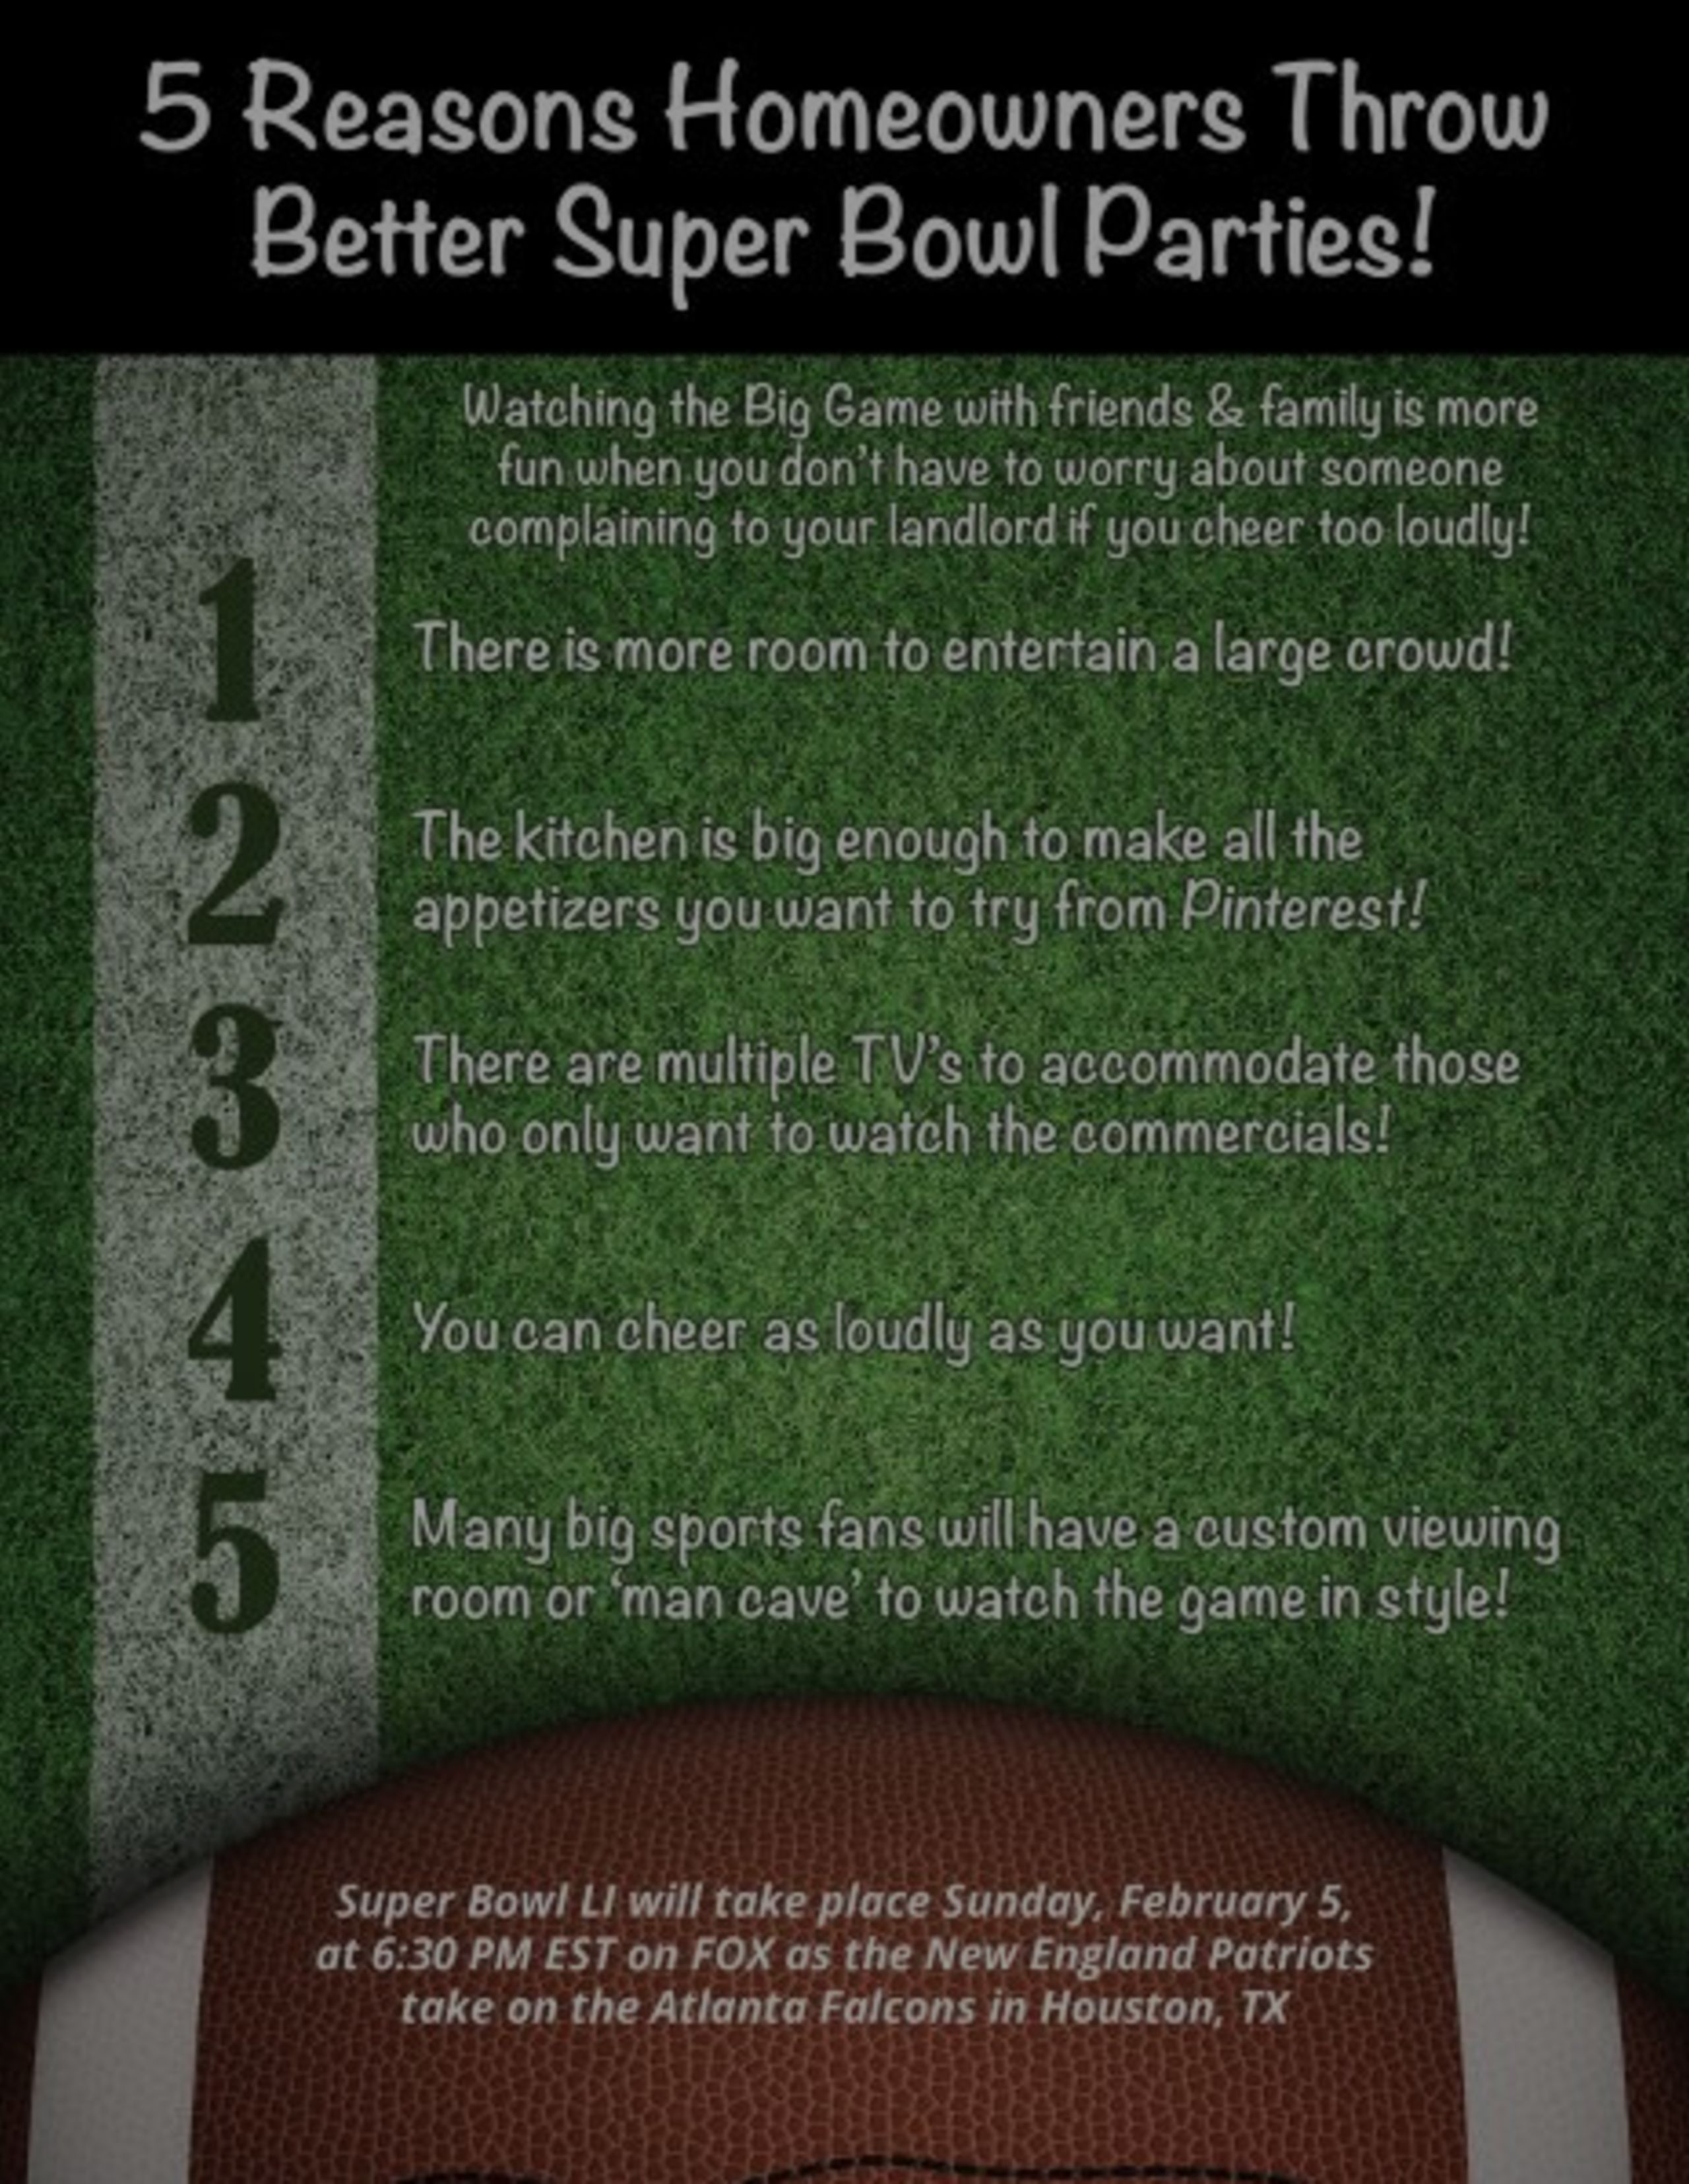 5 Reasons Homeowners Throw Better Superbowl Parties!